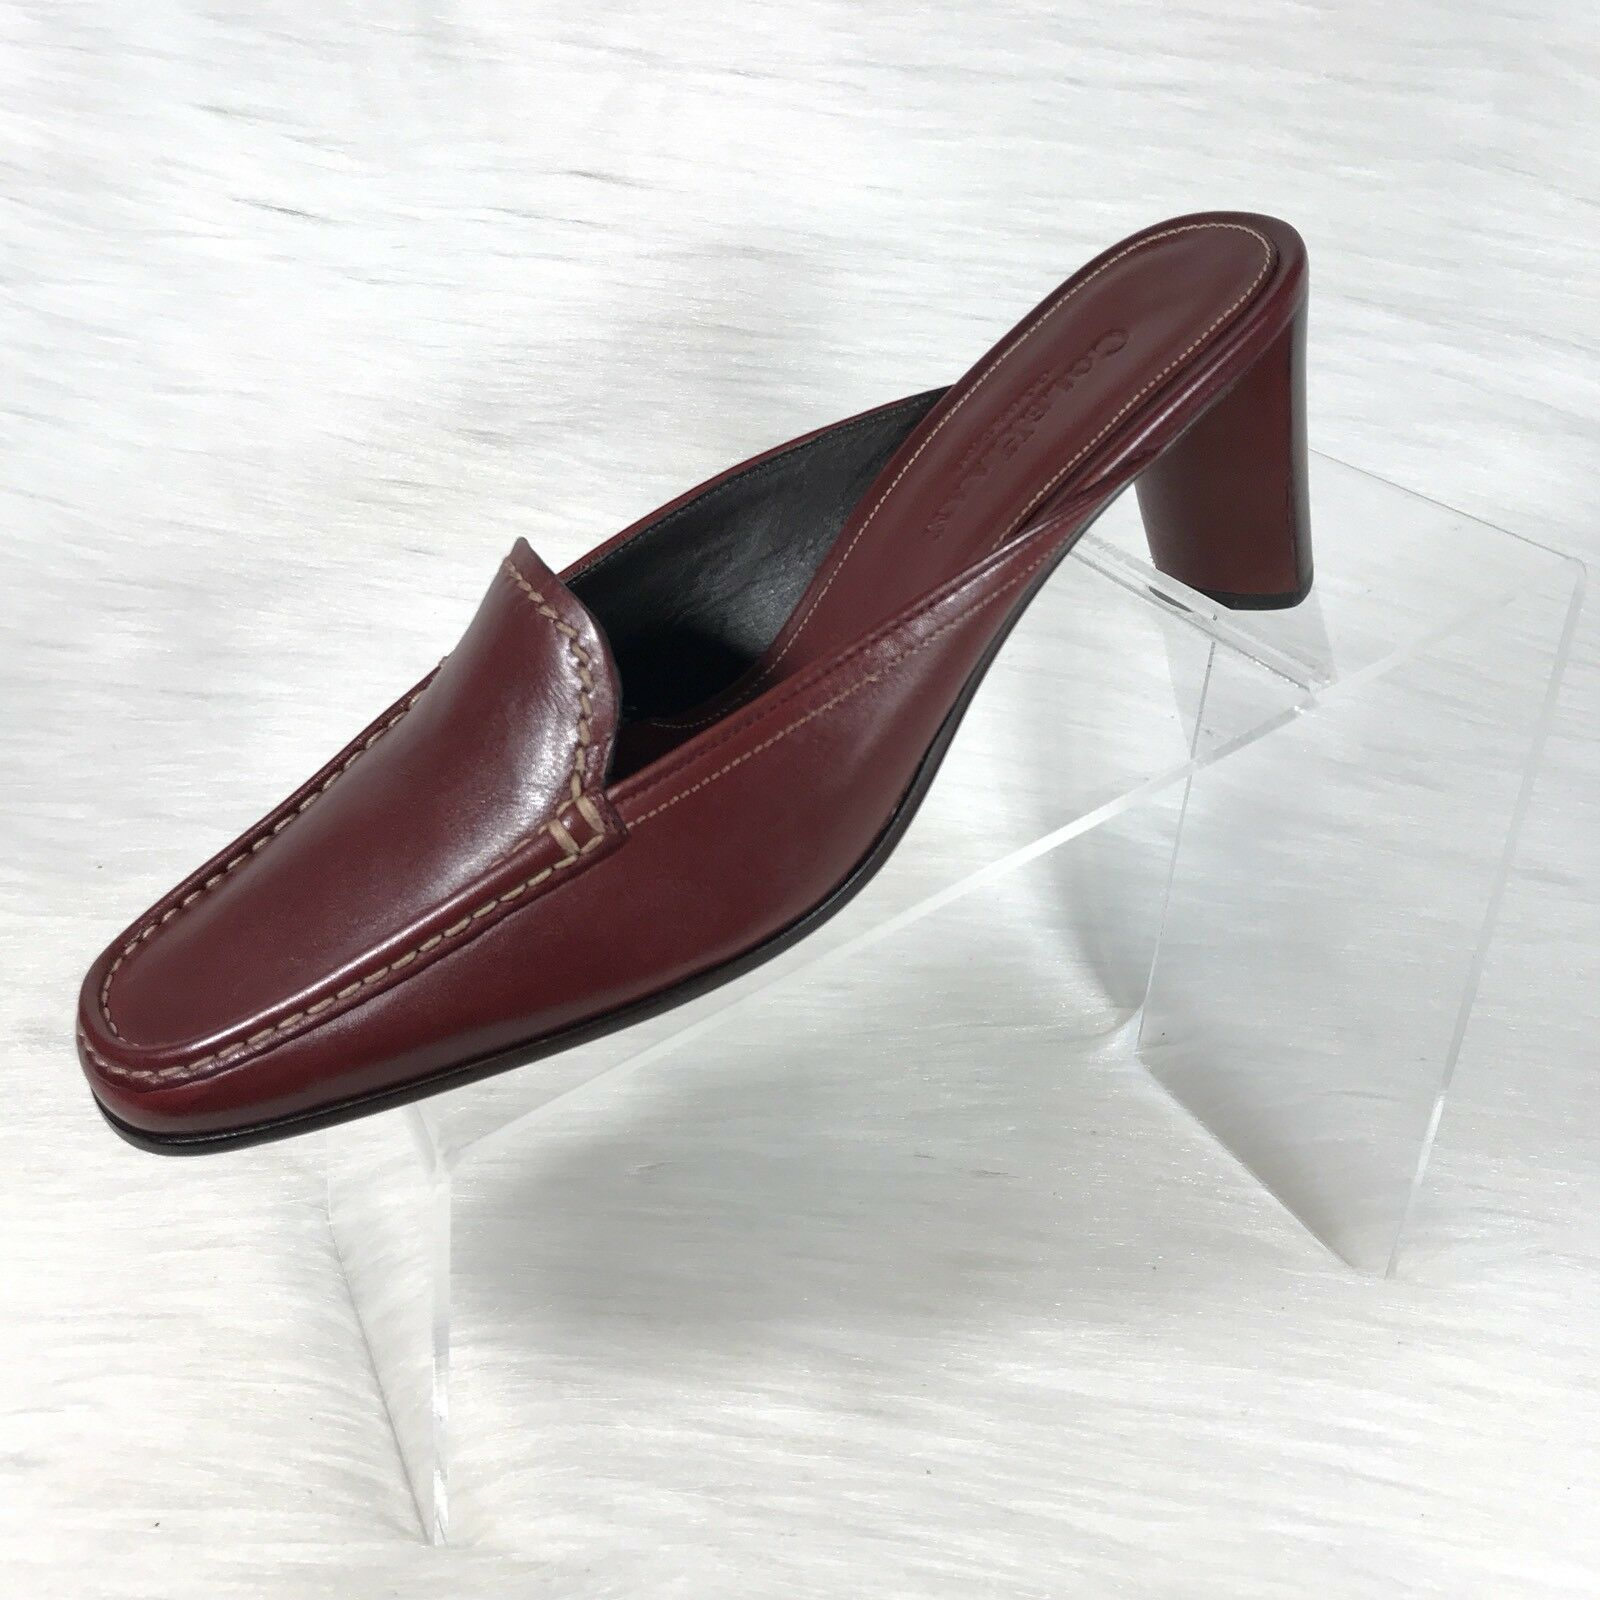 Cole Haan country Women's Mules Red leather Moc Toe Loafers Low Heel Size 7.5 B